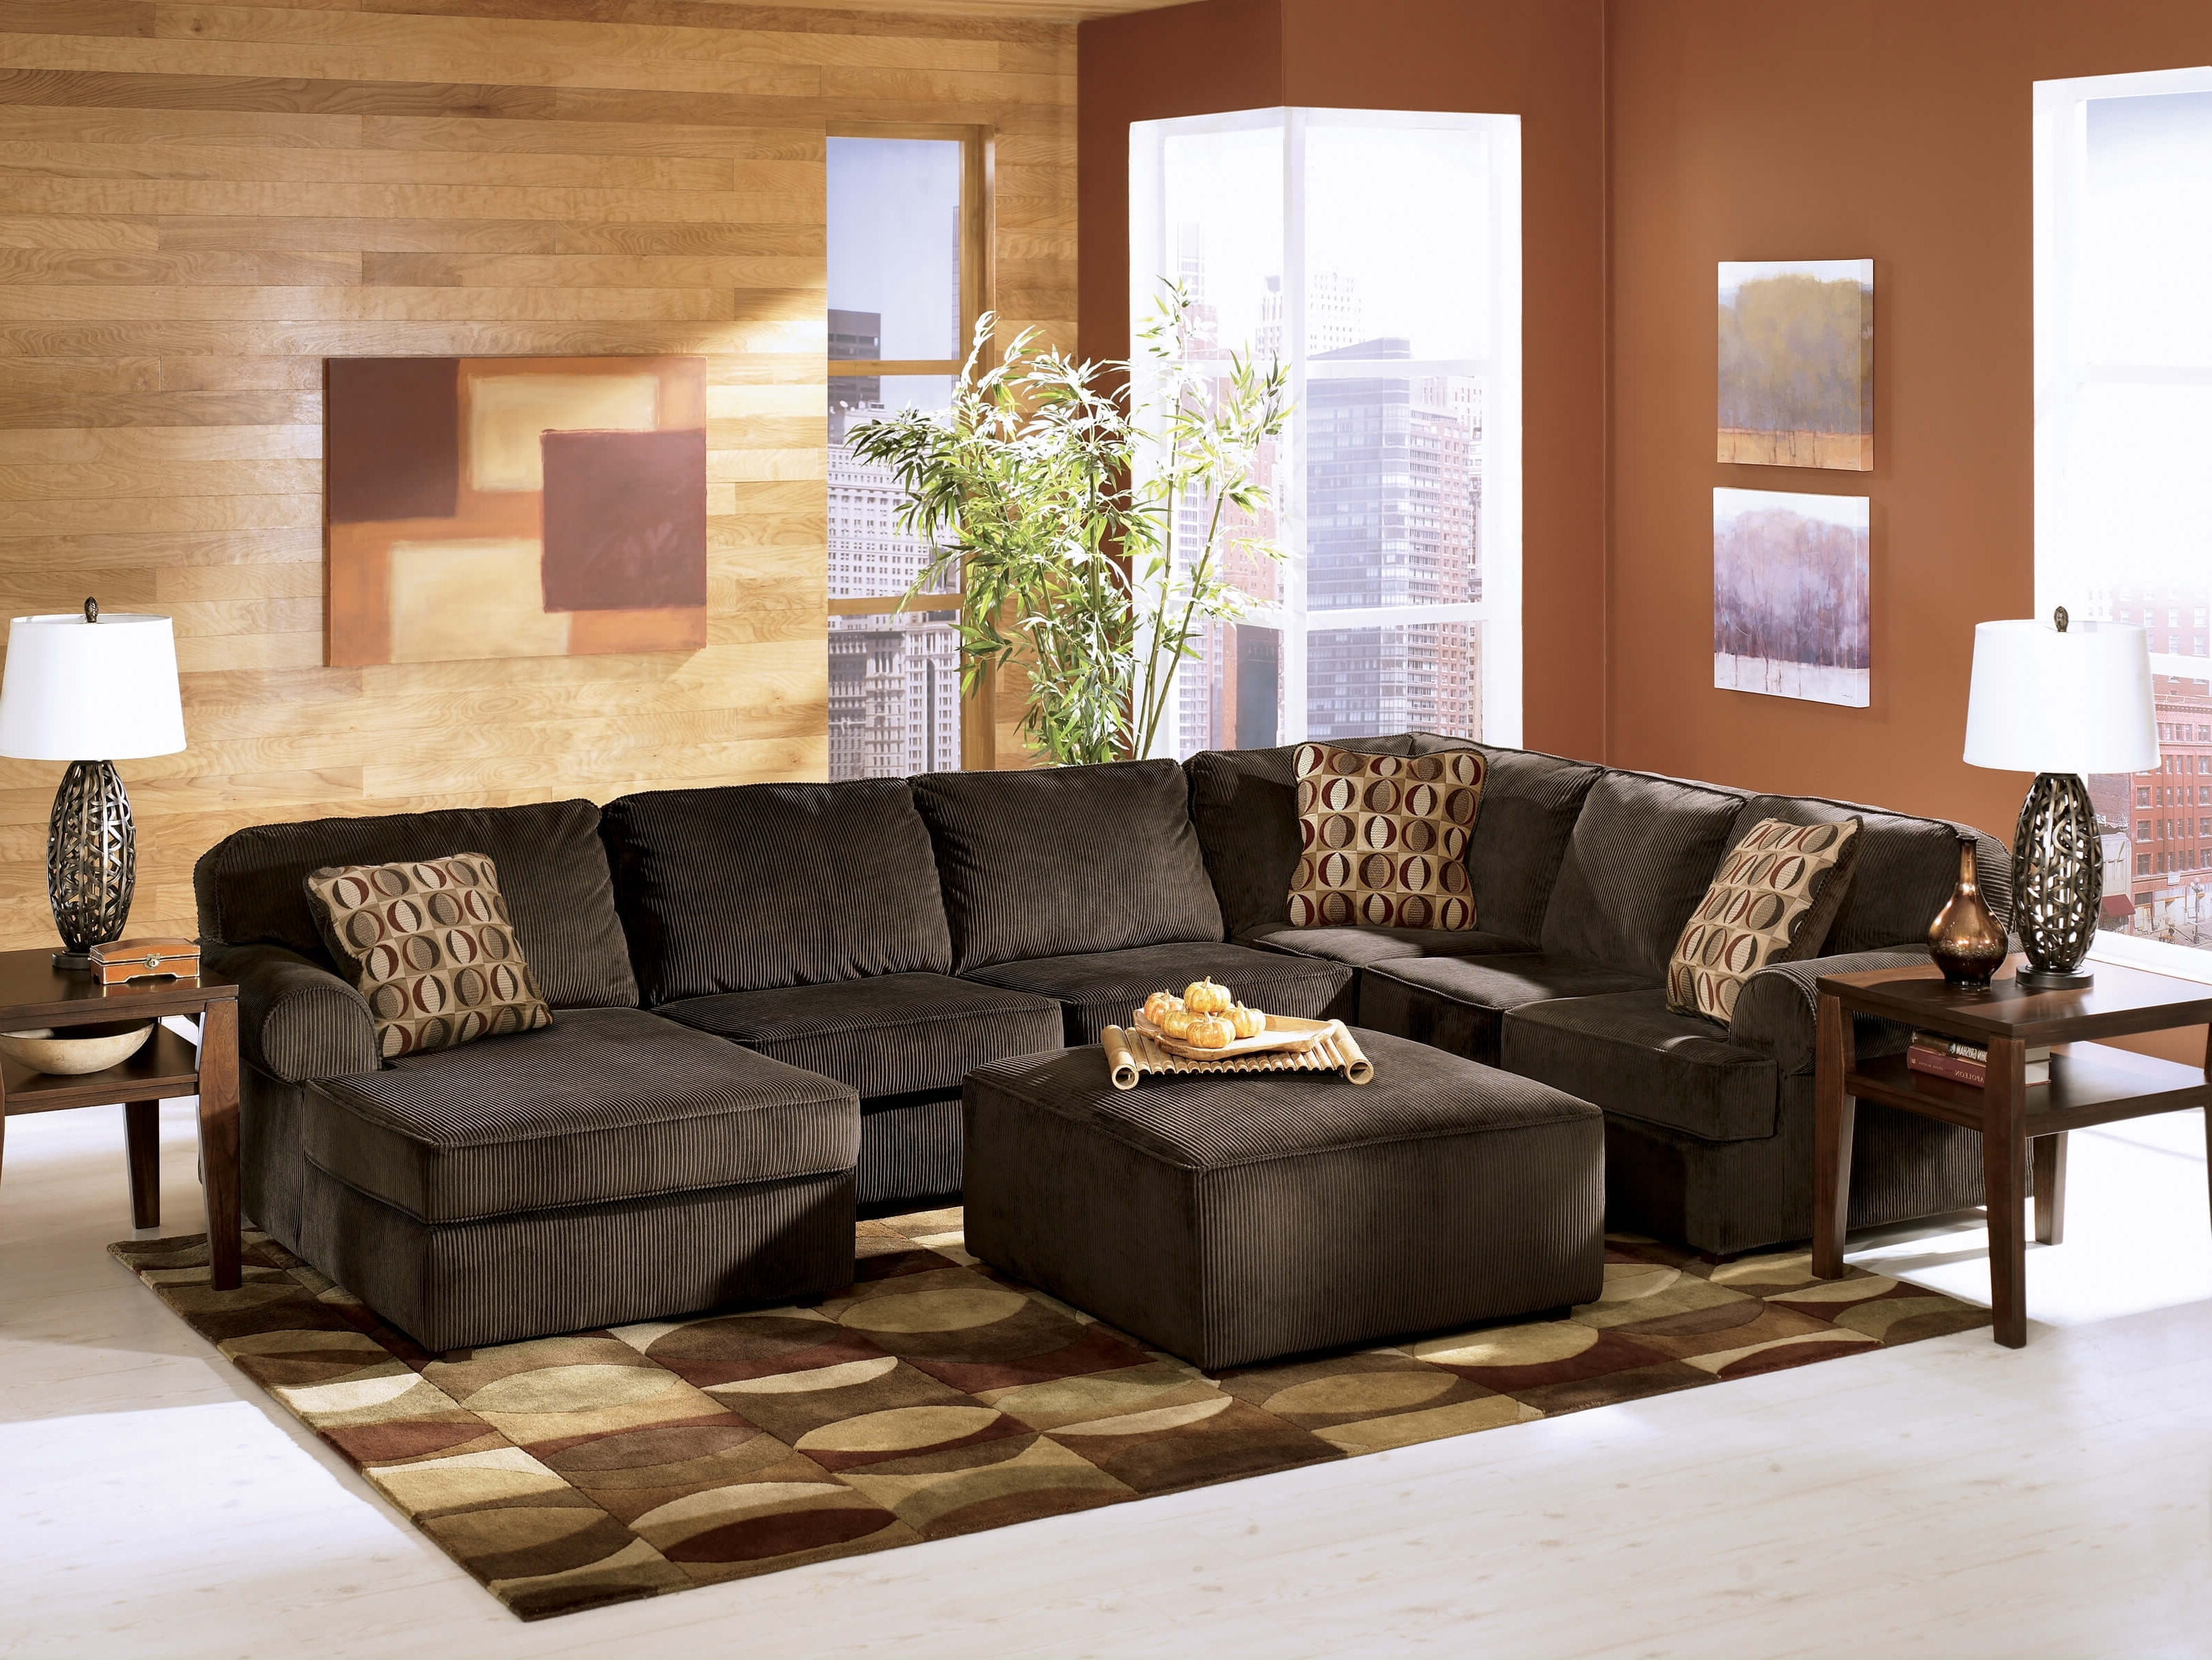 Ashley Furniture Sectional Sofa, Ashley Furniture Brown Sectional Pertaining To Trendy Sectional Sofas At Ashley Furniture (View 5 of 15)